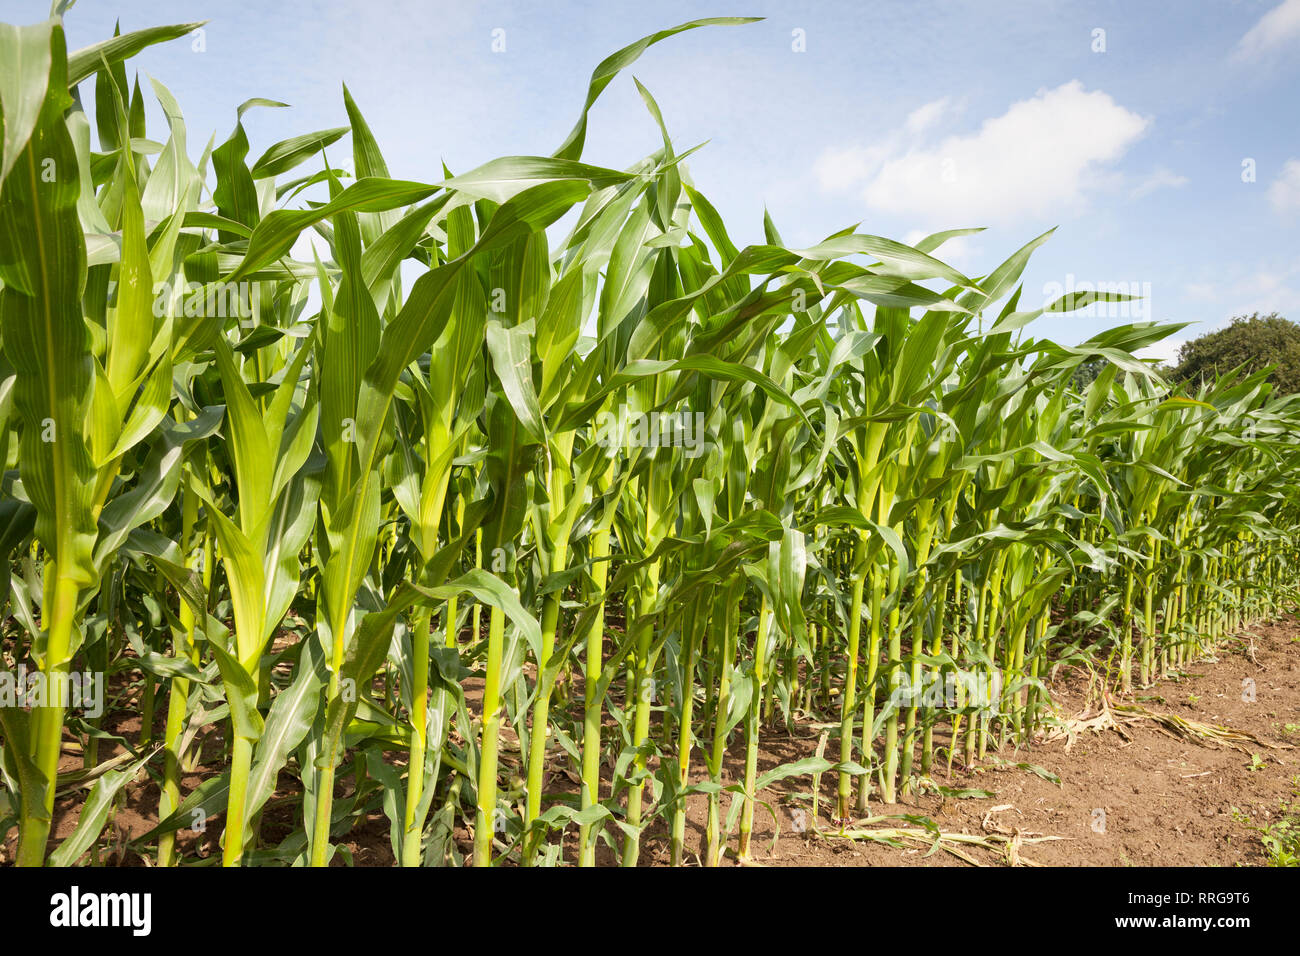 botany, corn (Zea mays), field, Germany, Additional-Rights-Clearance-Info-Not-Available - Stock Image